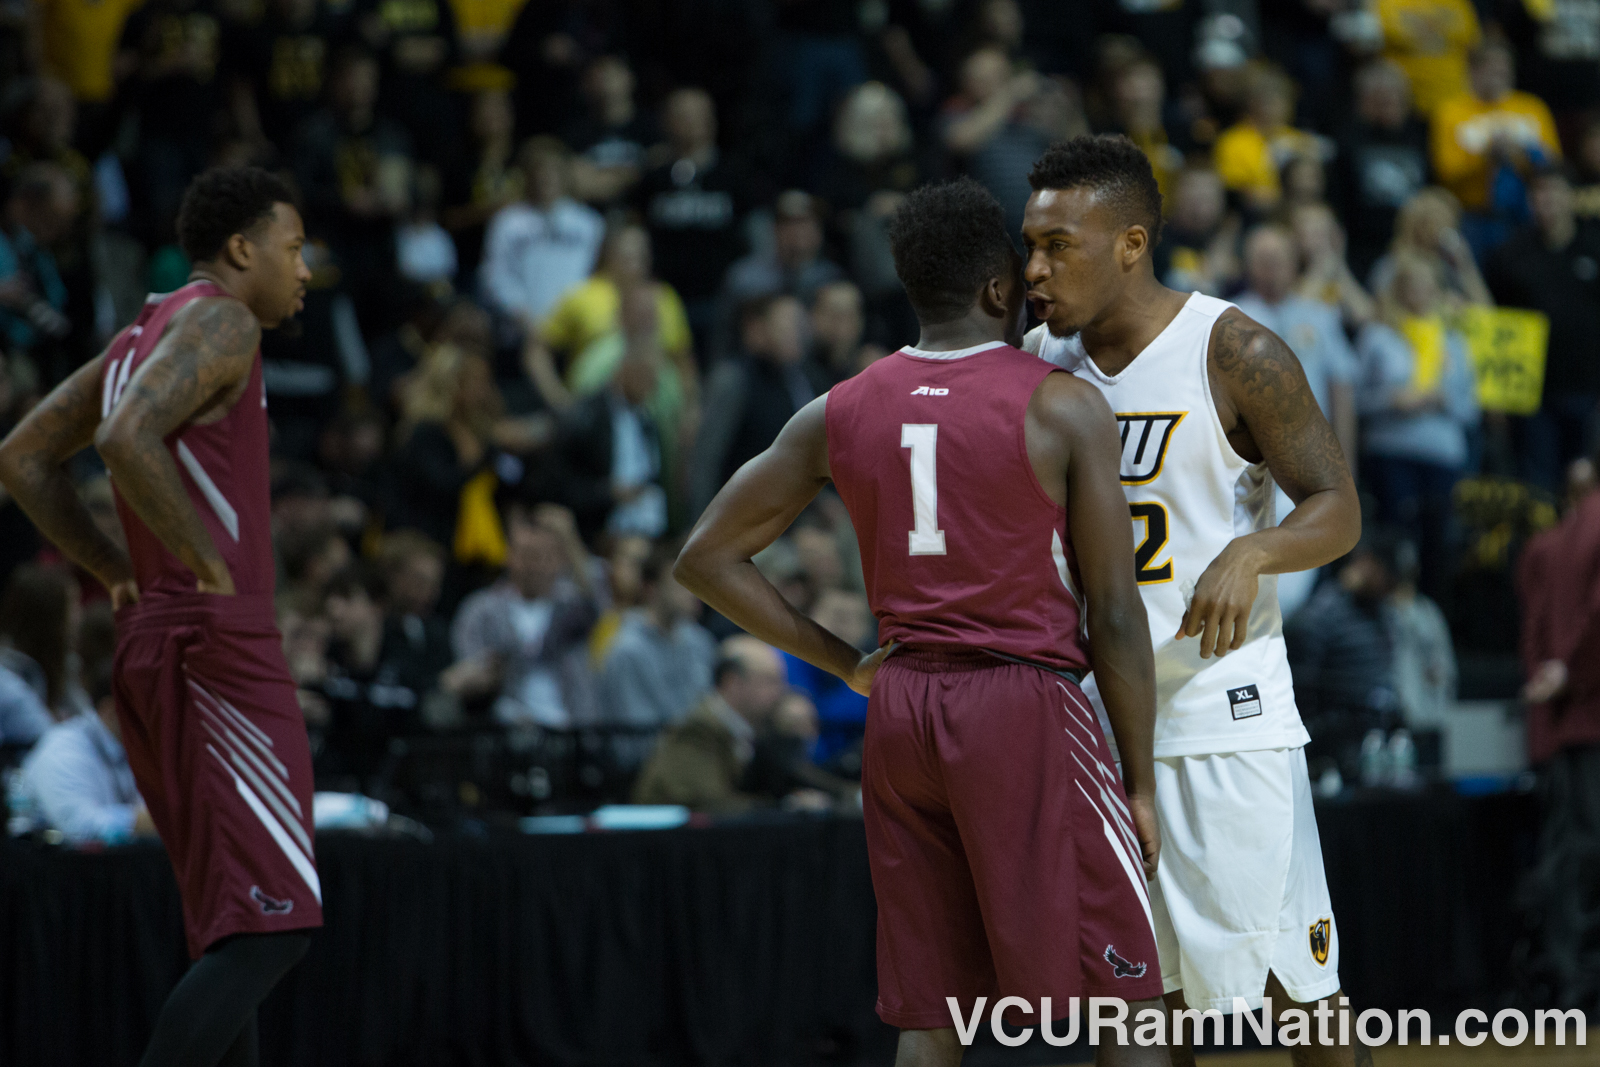 VCU-BASKETBALL-3814